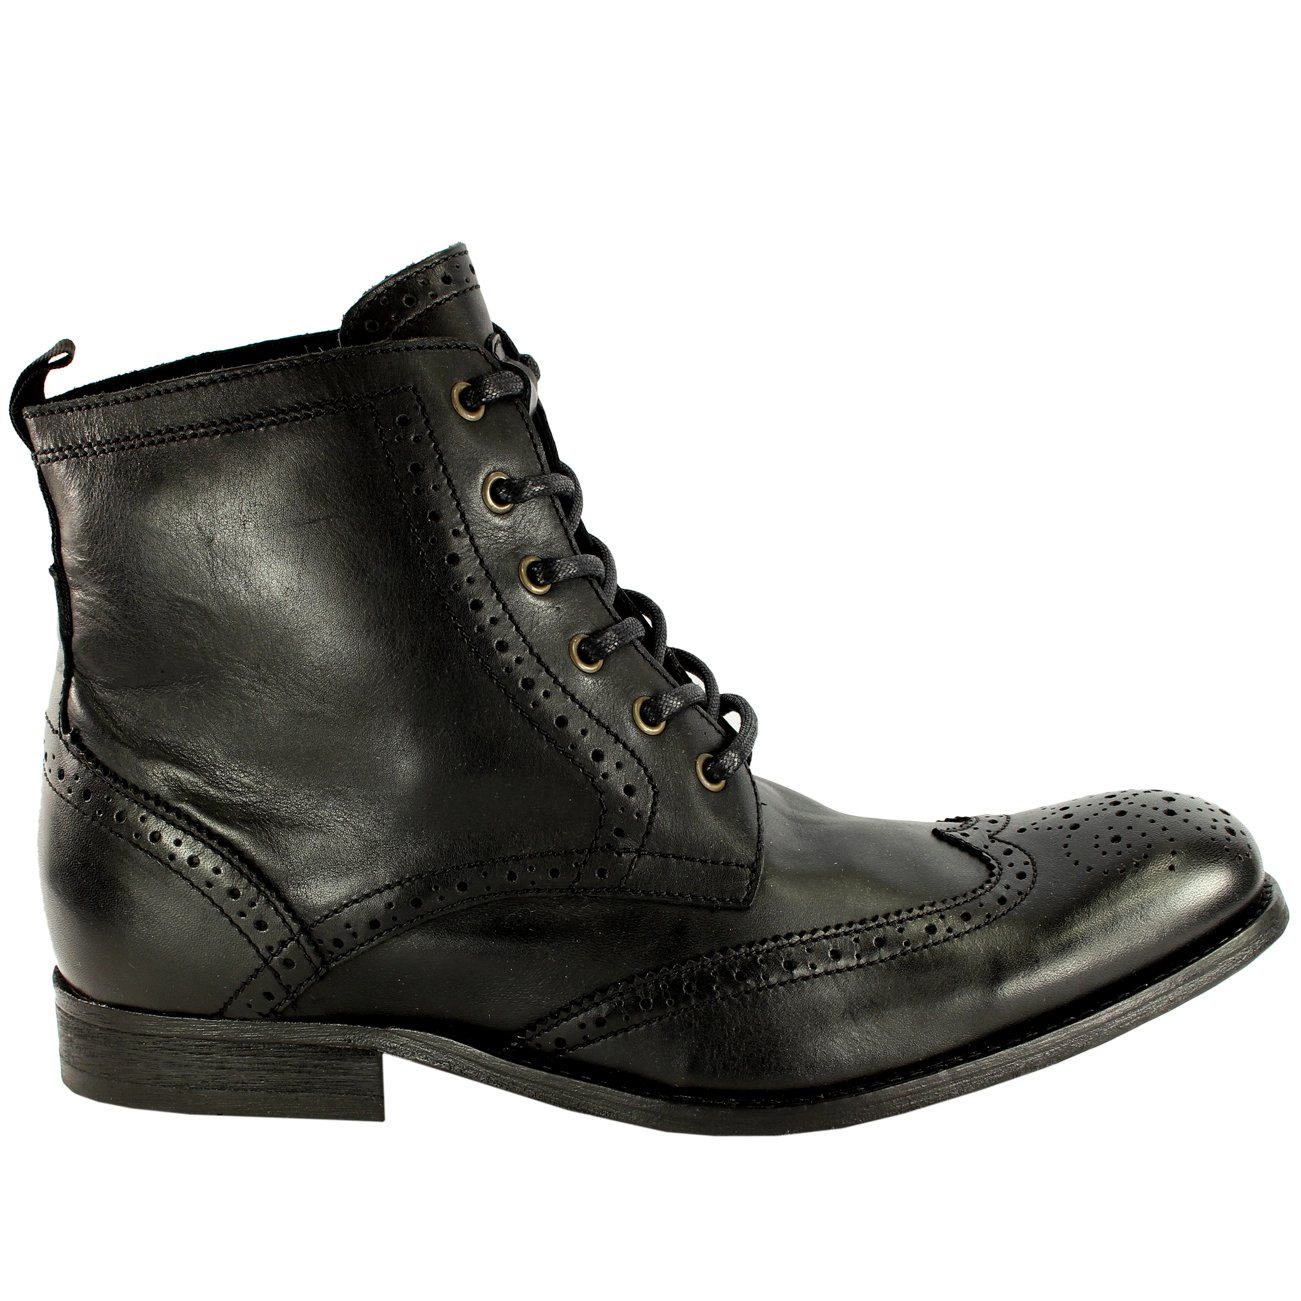 fdfca62d0cd2 Hudson Mens H Angus Brogue Leather Lace Up Smart Ankle Boots - Black - 13   Amazon.co.uk  Shoes   Bags